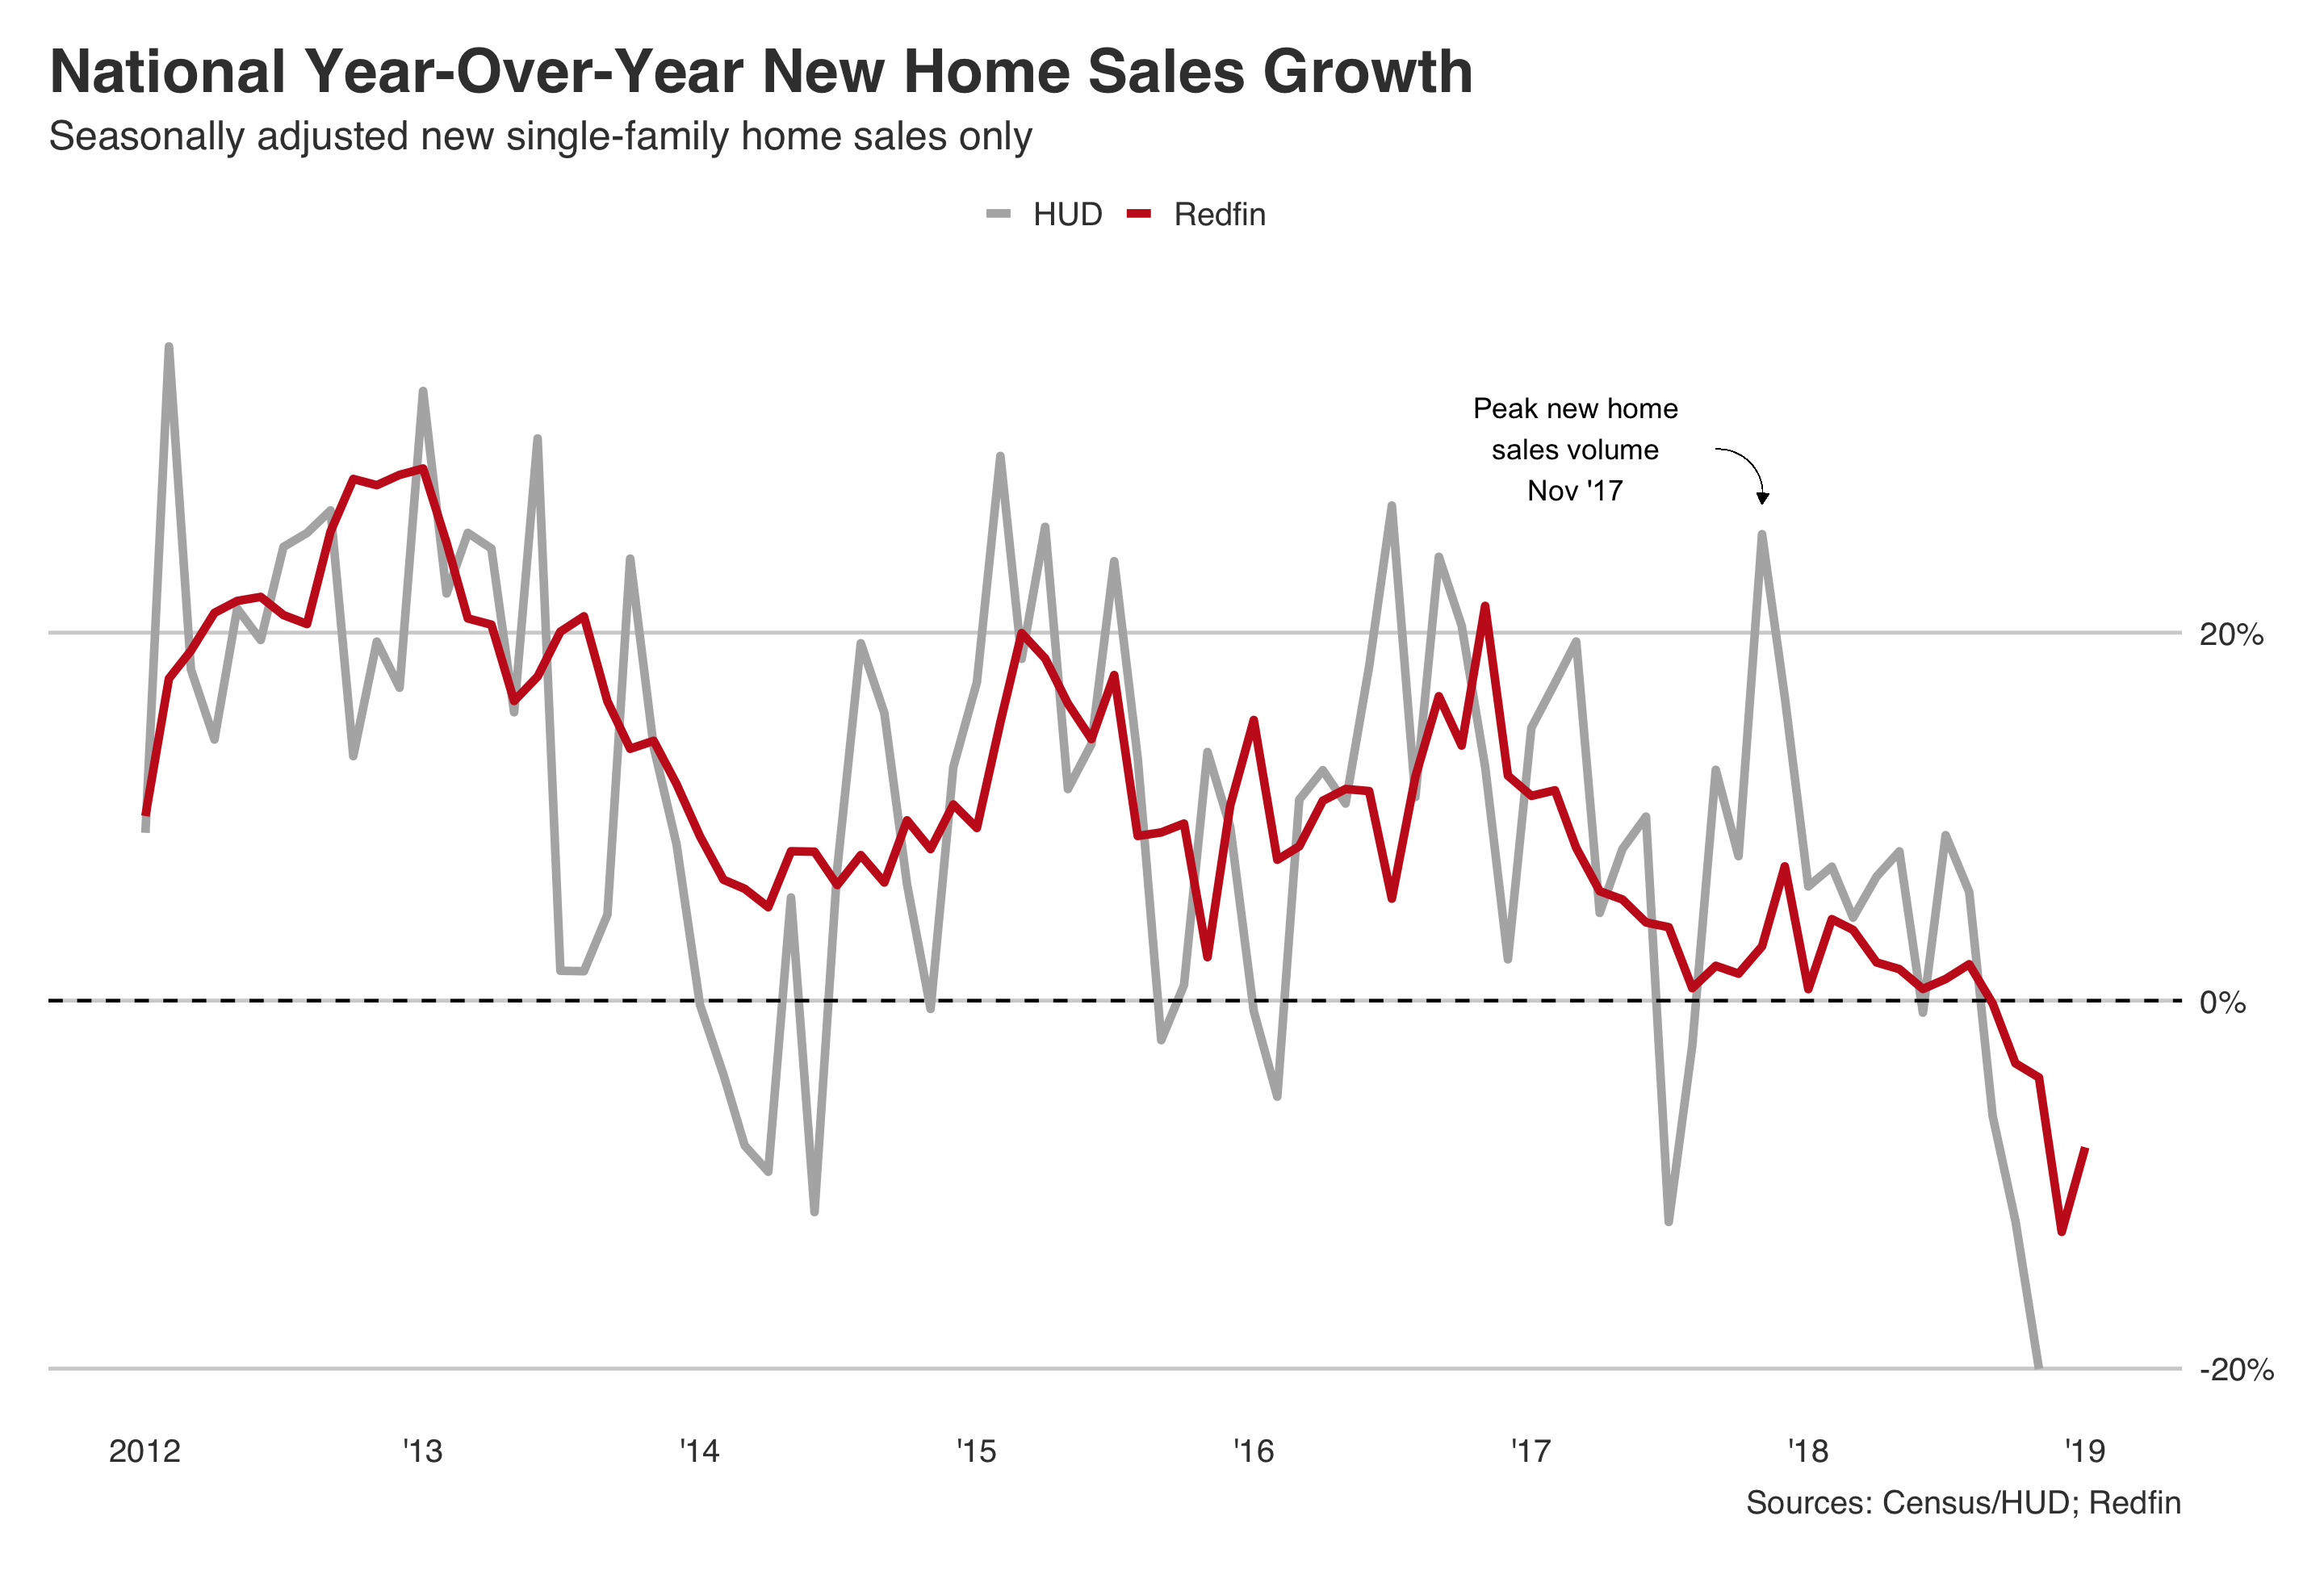 National-New-Single-Family-Home-Sales-Growth-seasonally-adjusted (1).png